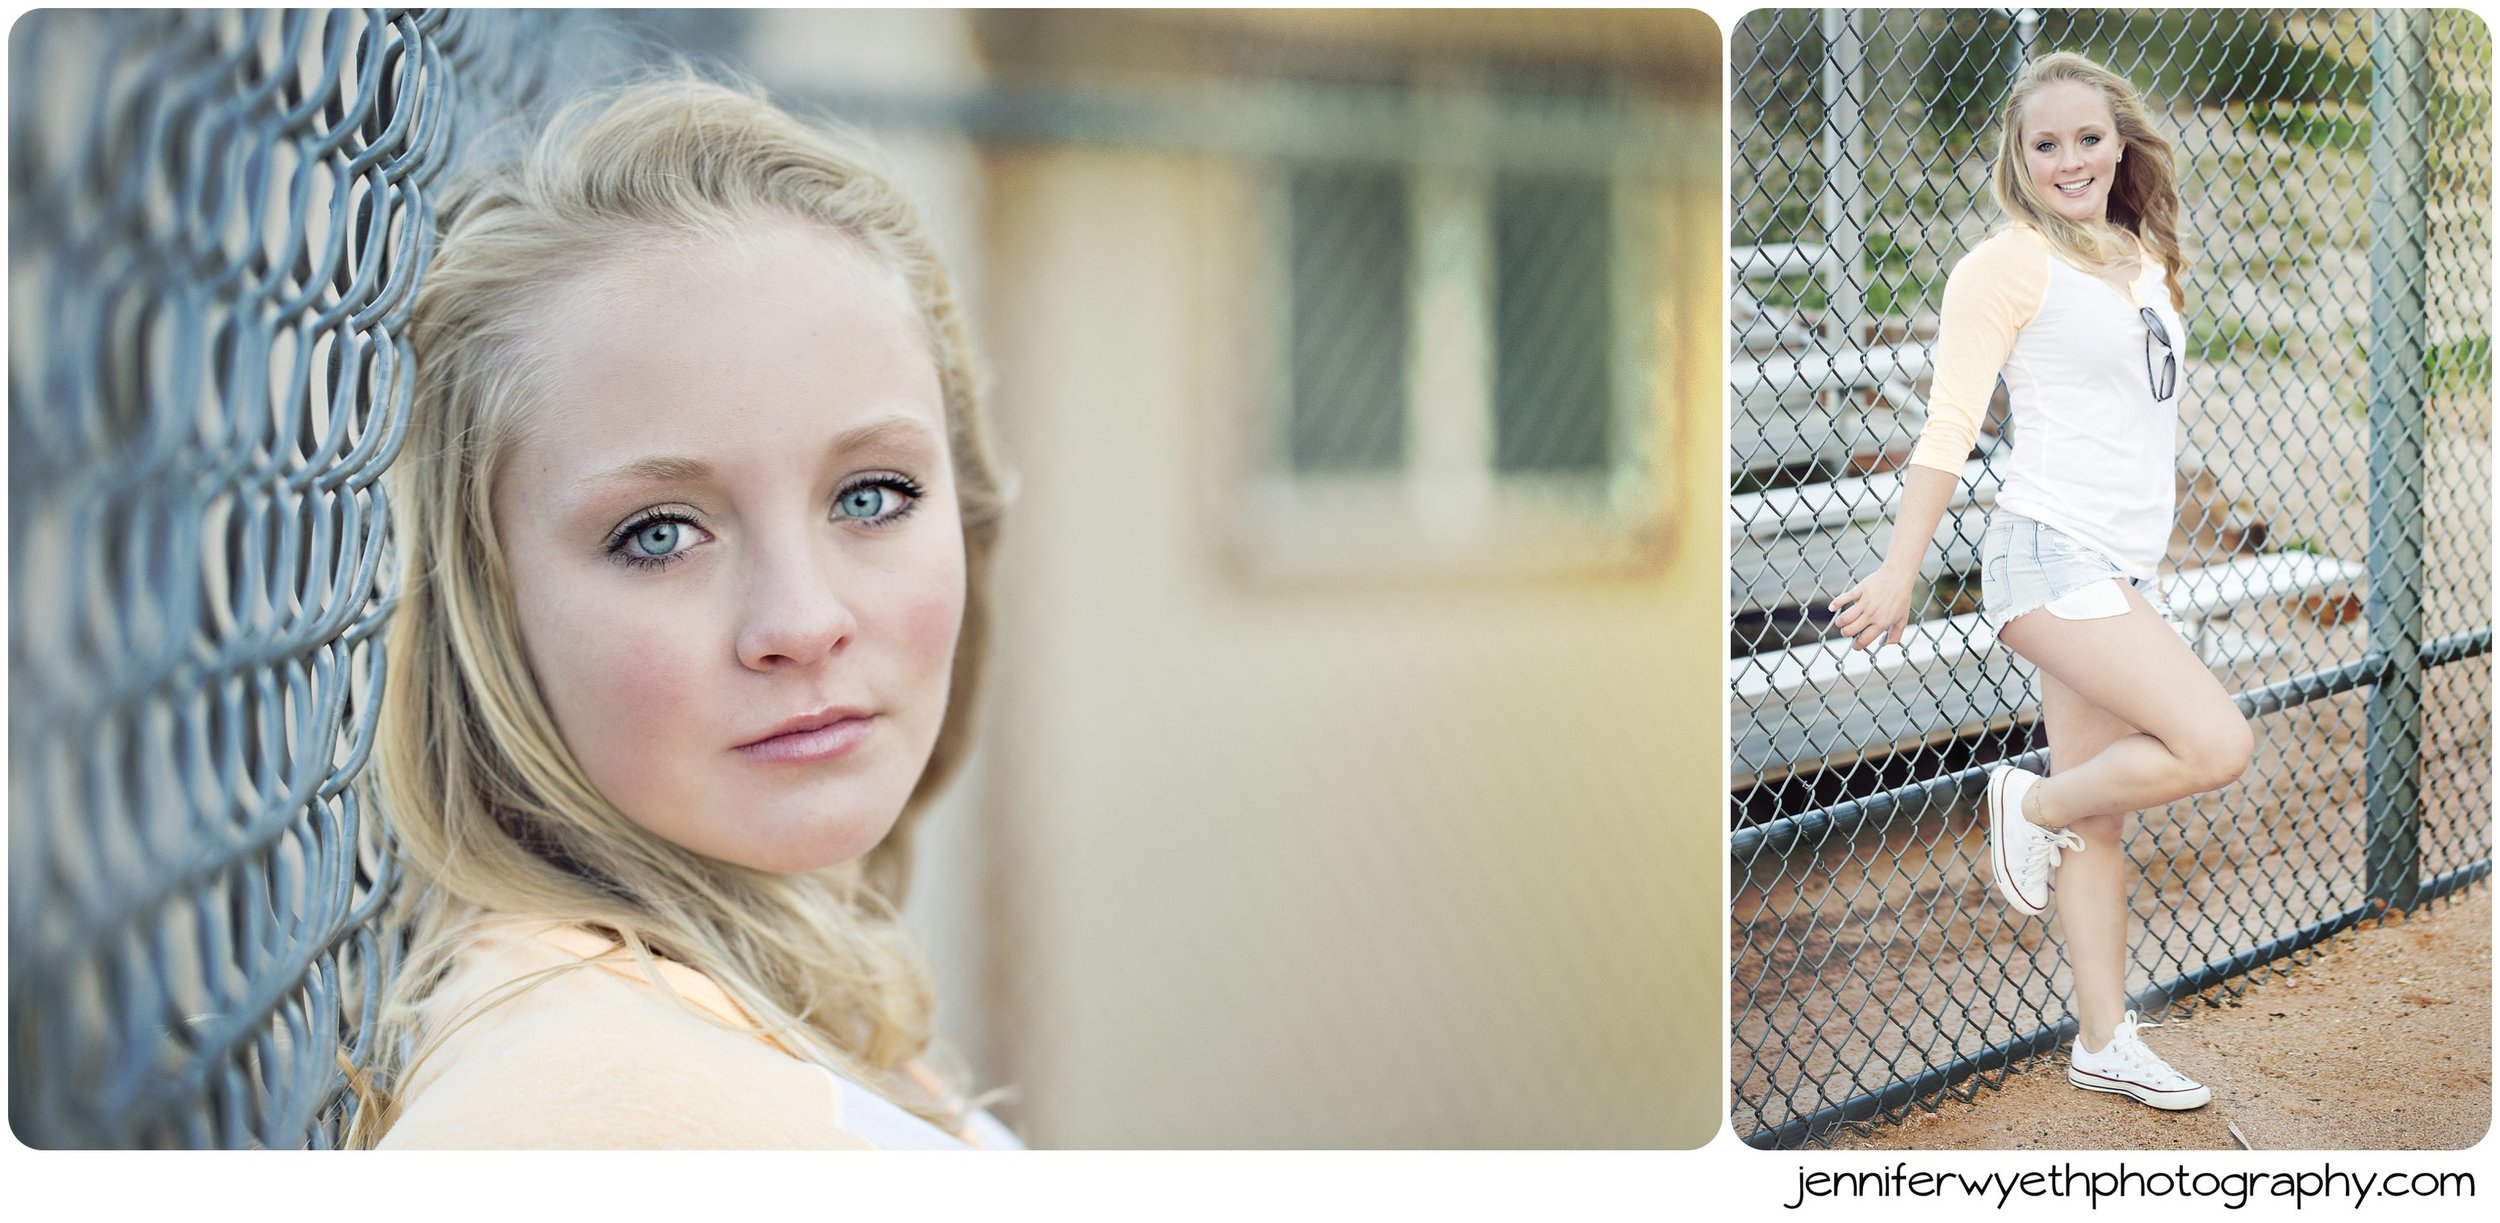 beautiful girl leans against chain link fence and poses for picture